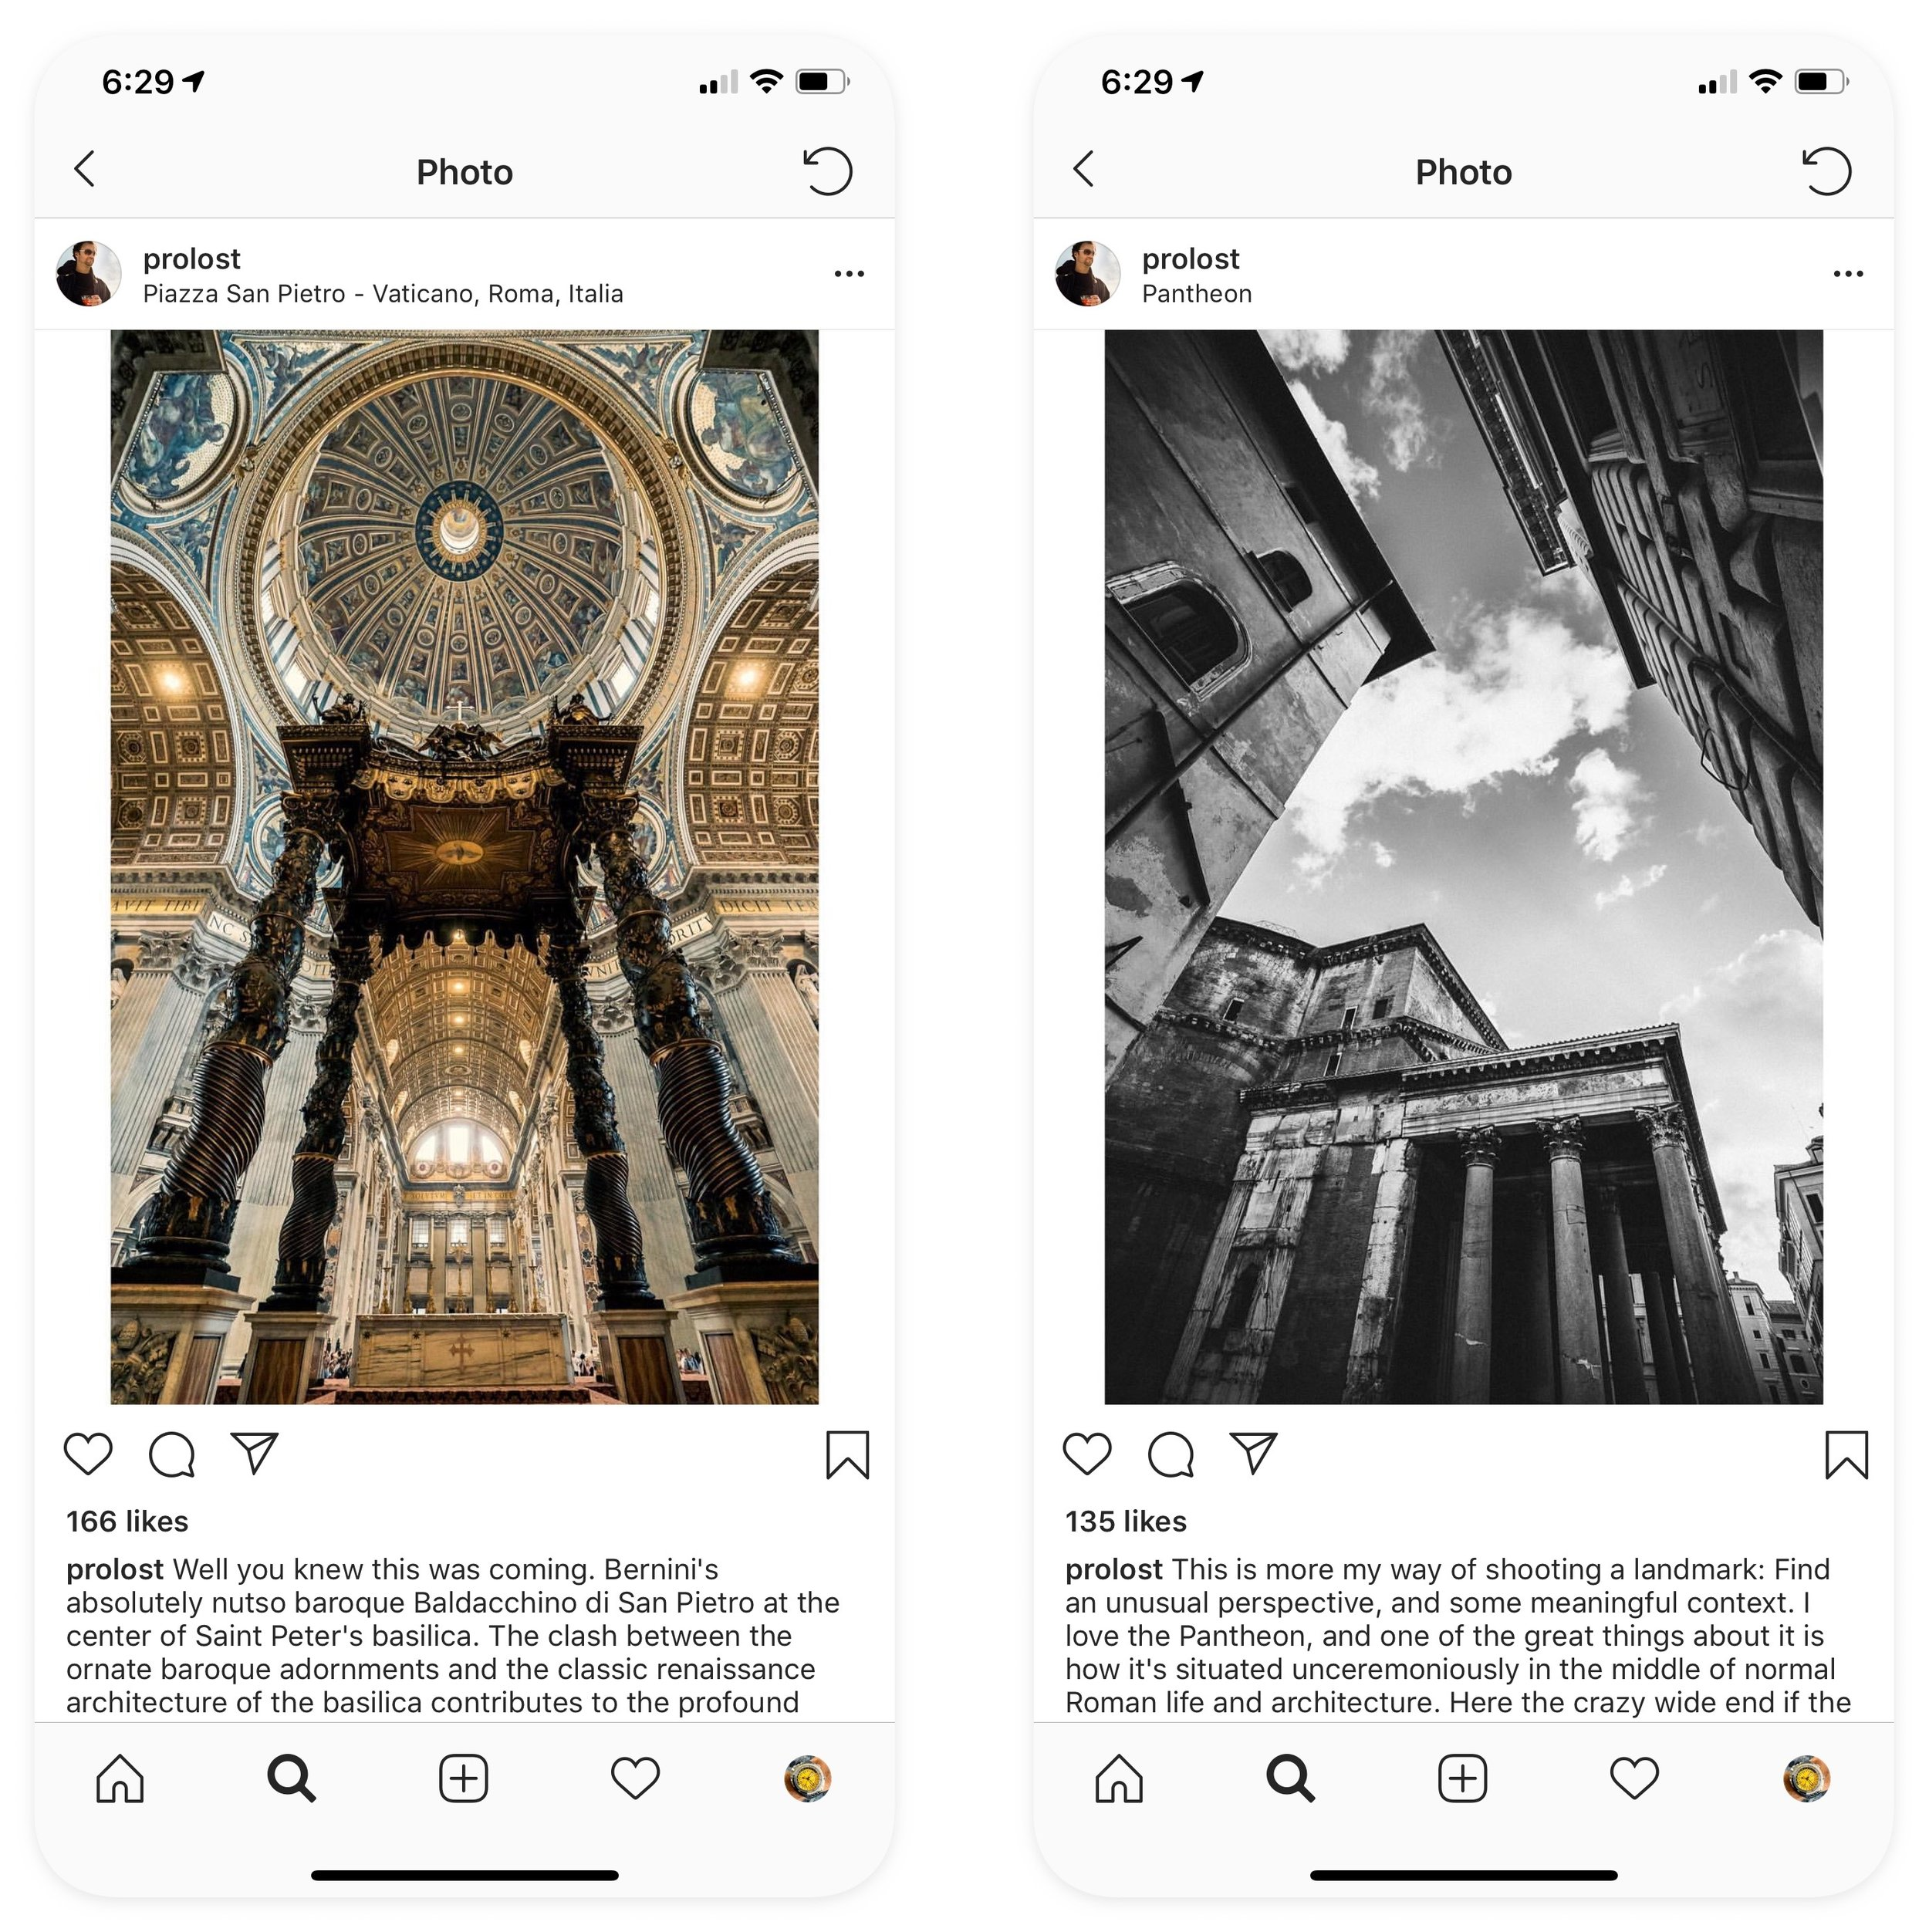 Instamax add white borders to photos that are too tall for Instagram.